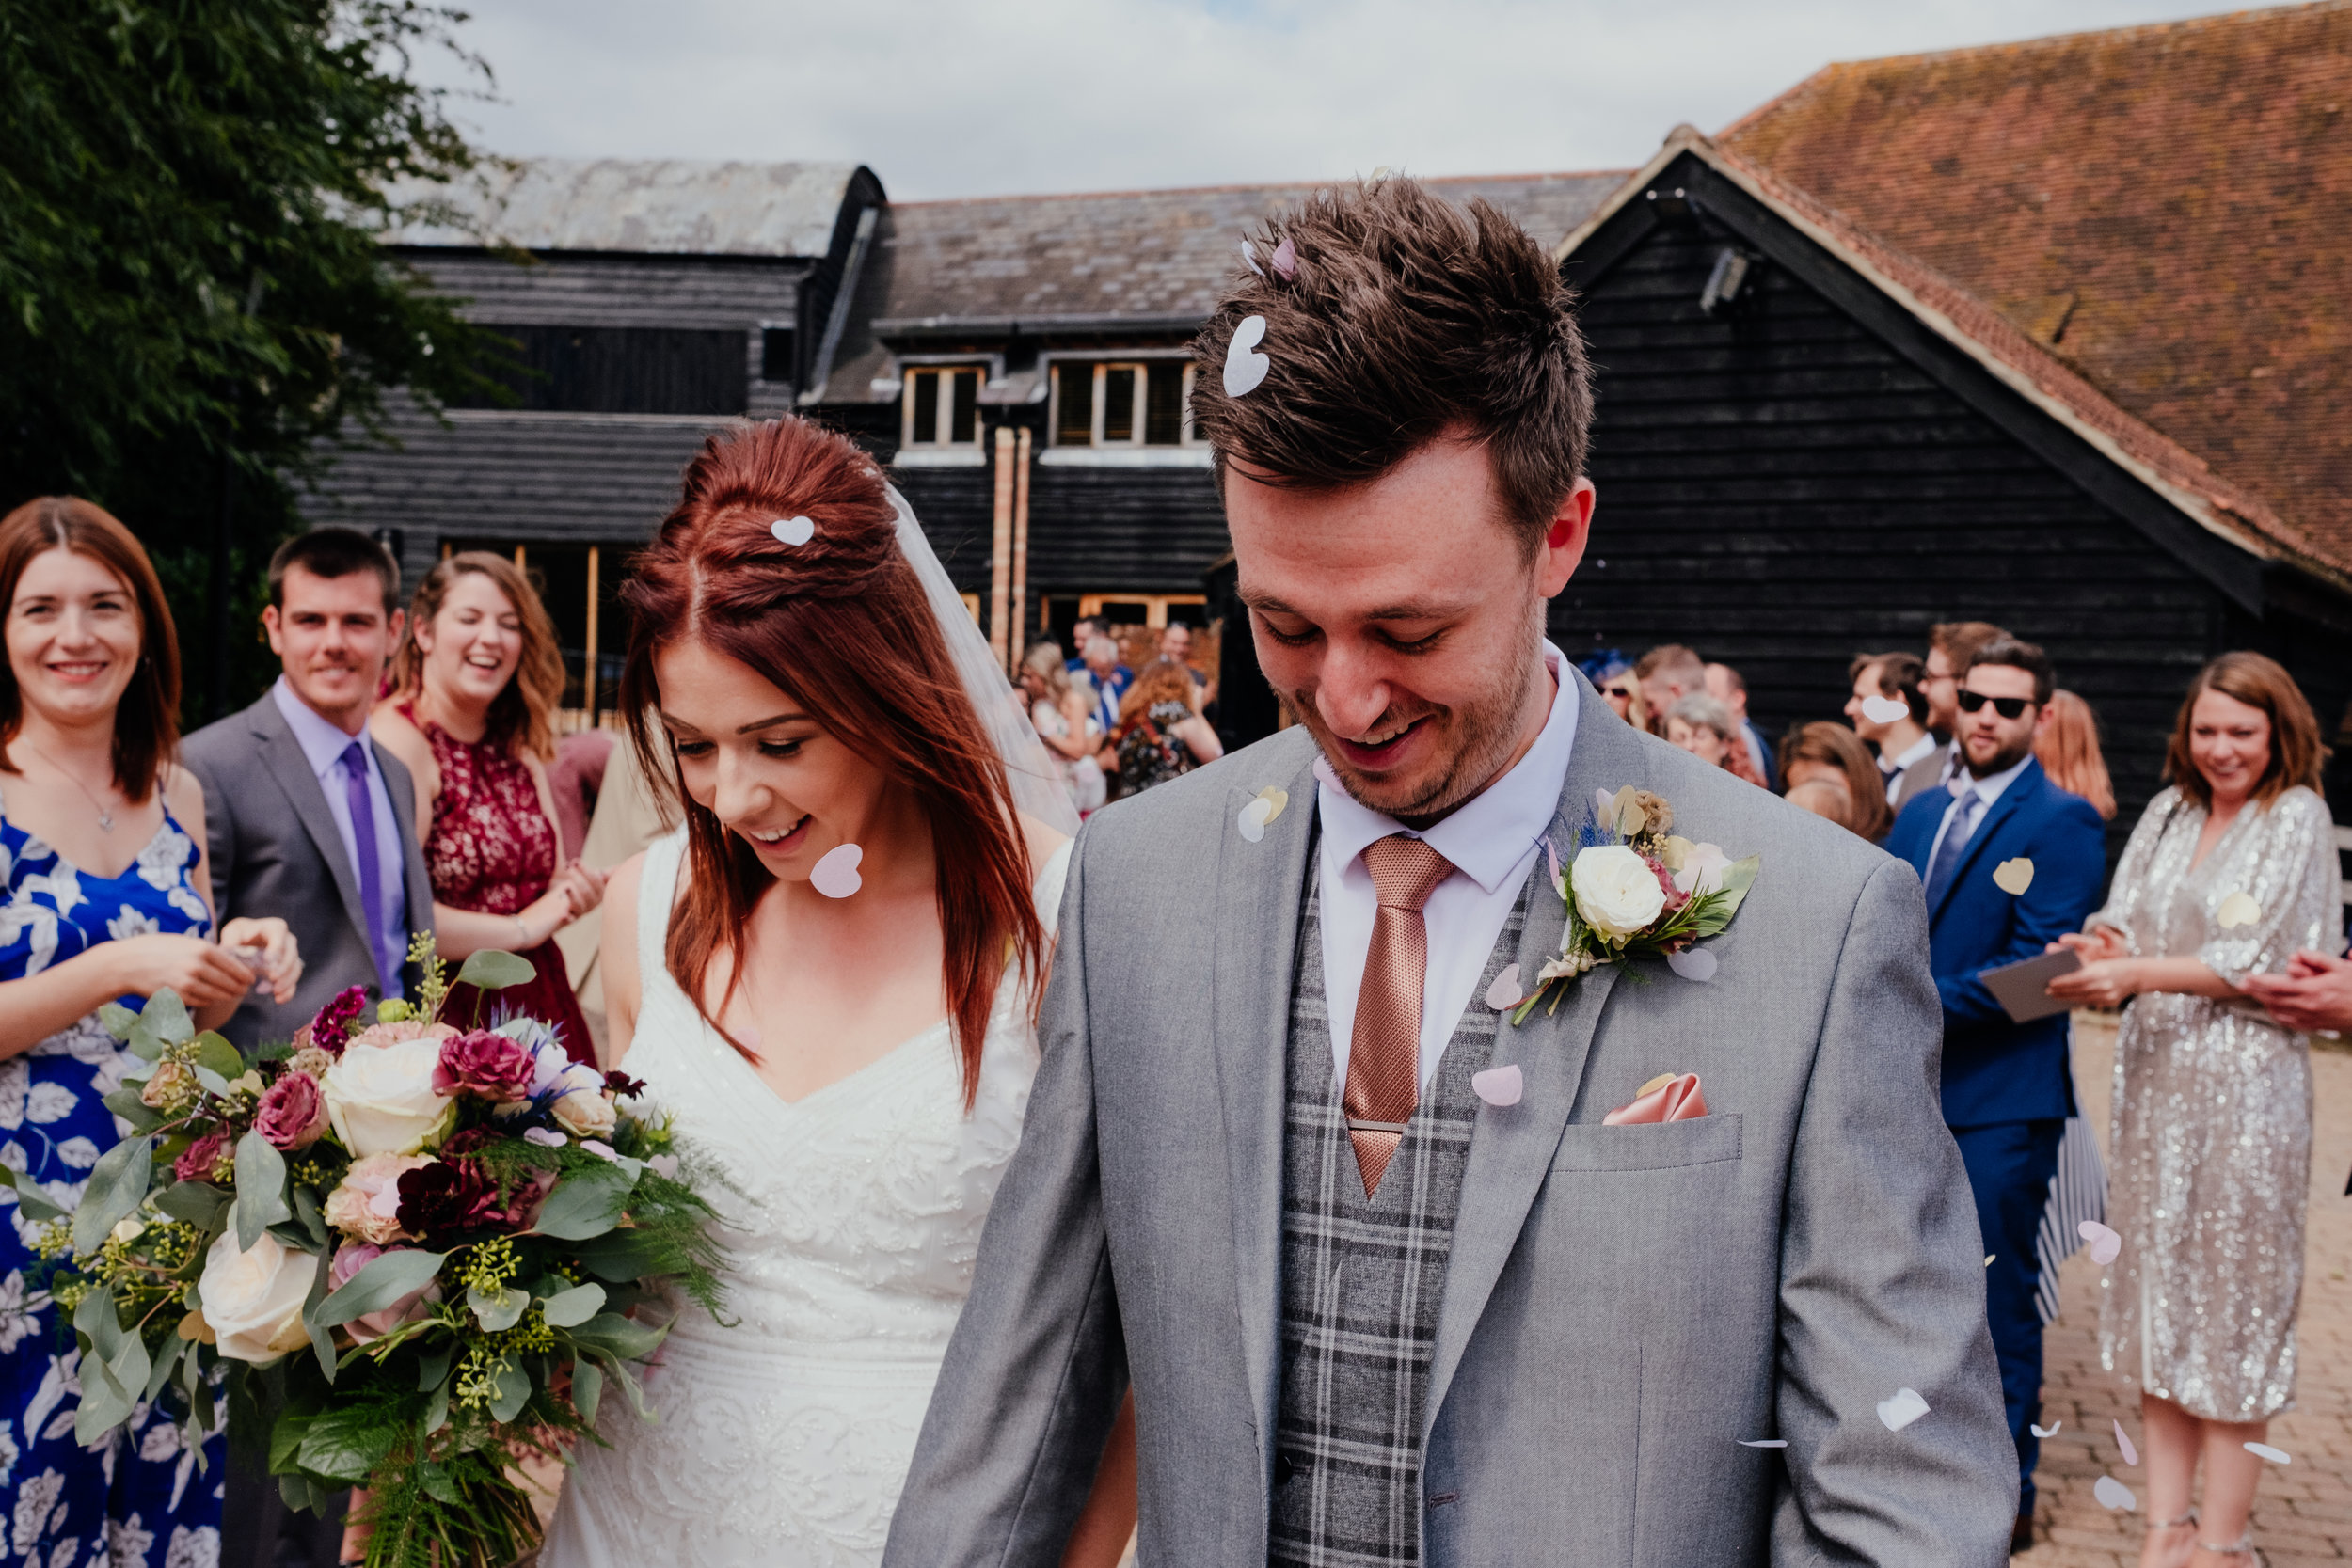 Happy Bride and Groom surrounded by heart confetti